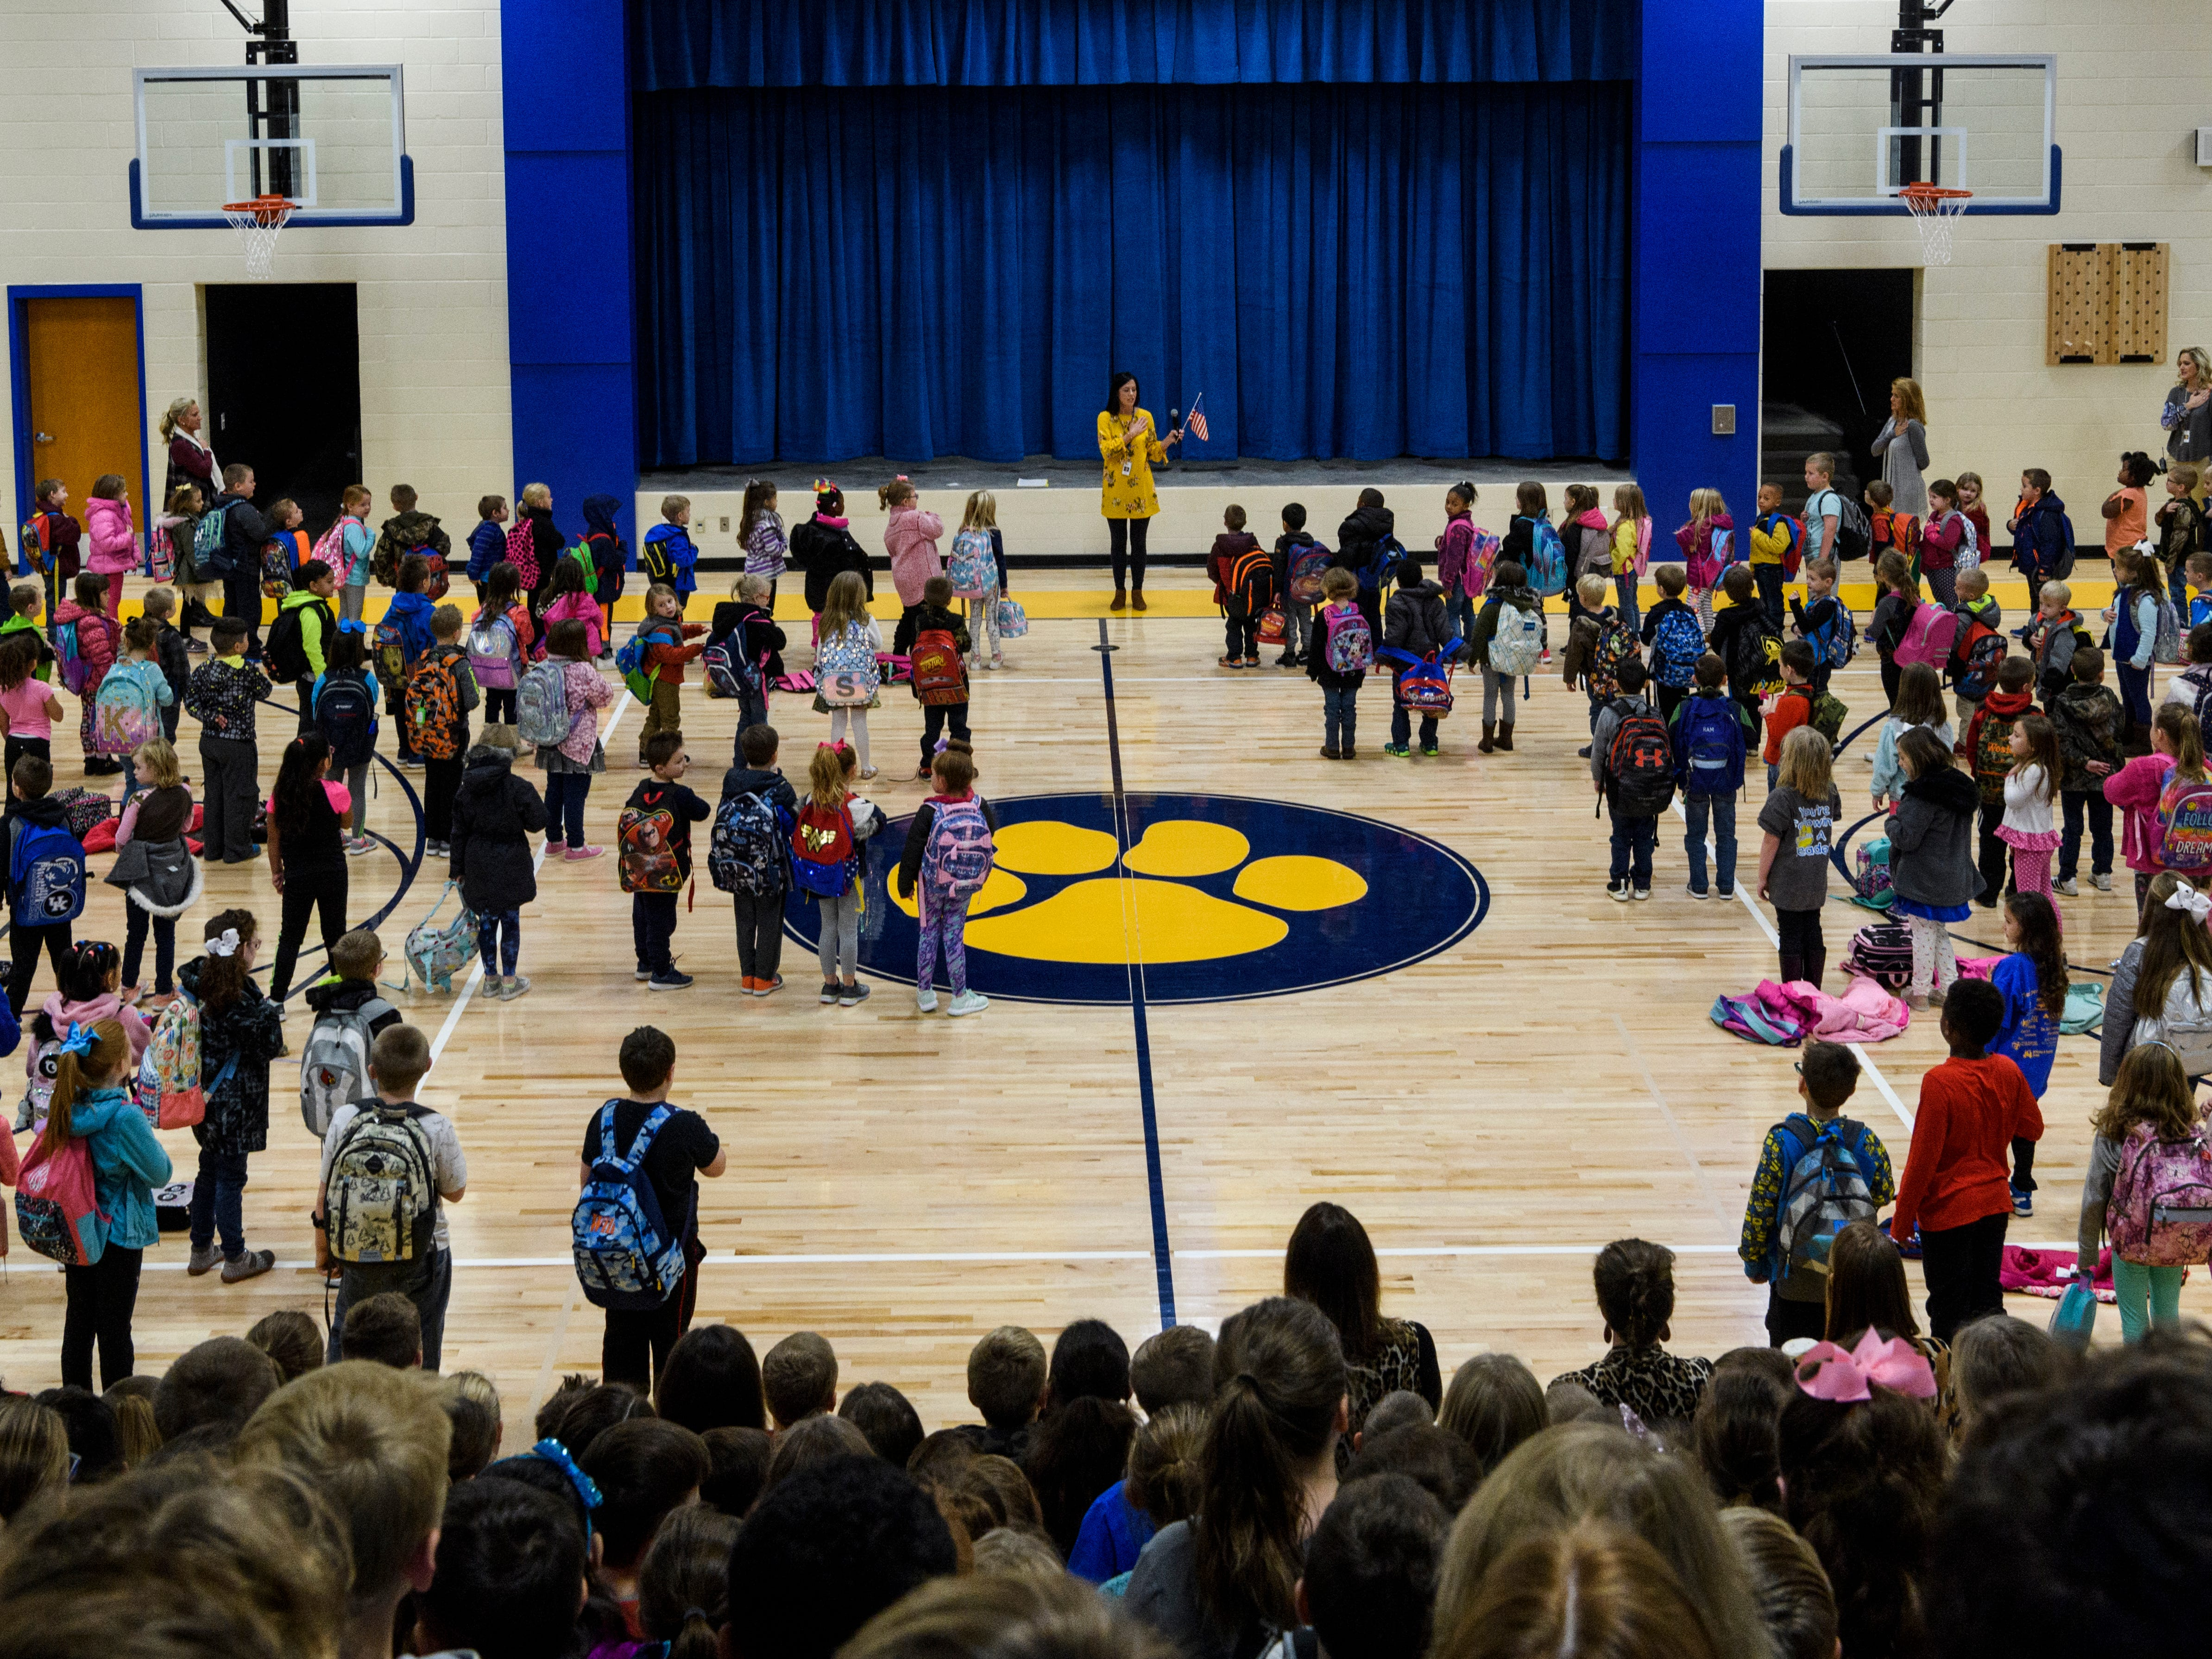 """Principal Sarah Estabrook, top center, leads the """"Pledge of Allegiance"""" during the morning assembly inside the gymnasium at Spottsville Elementary school, Monday, Nov. 12, 2018. Monday was the first time that students had school inside the new $17 million, 76,796 square-foot facility."""